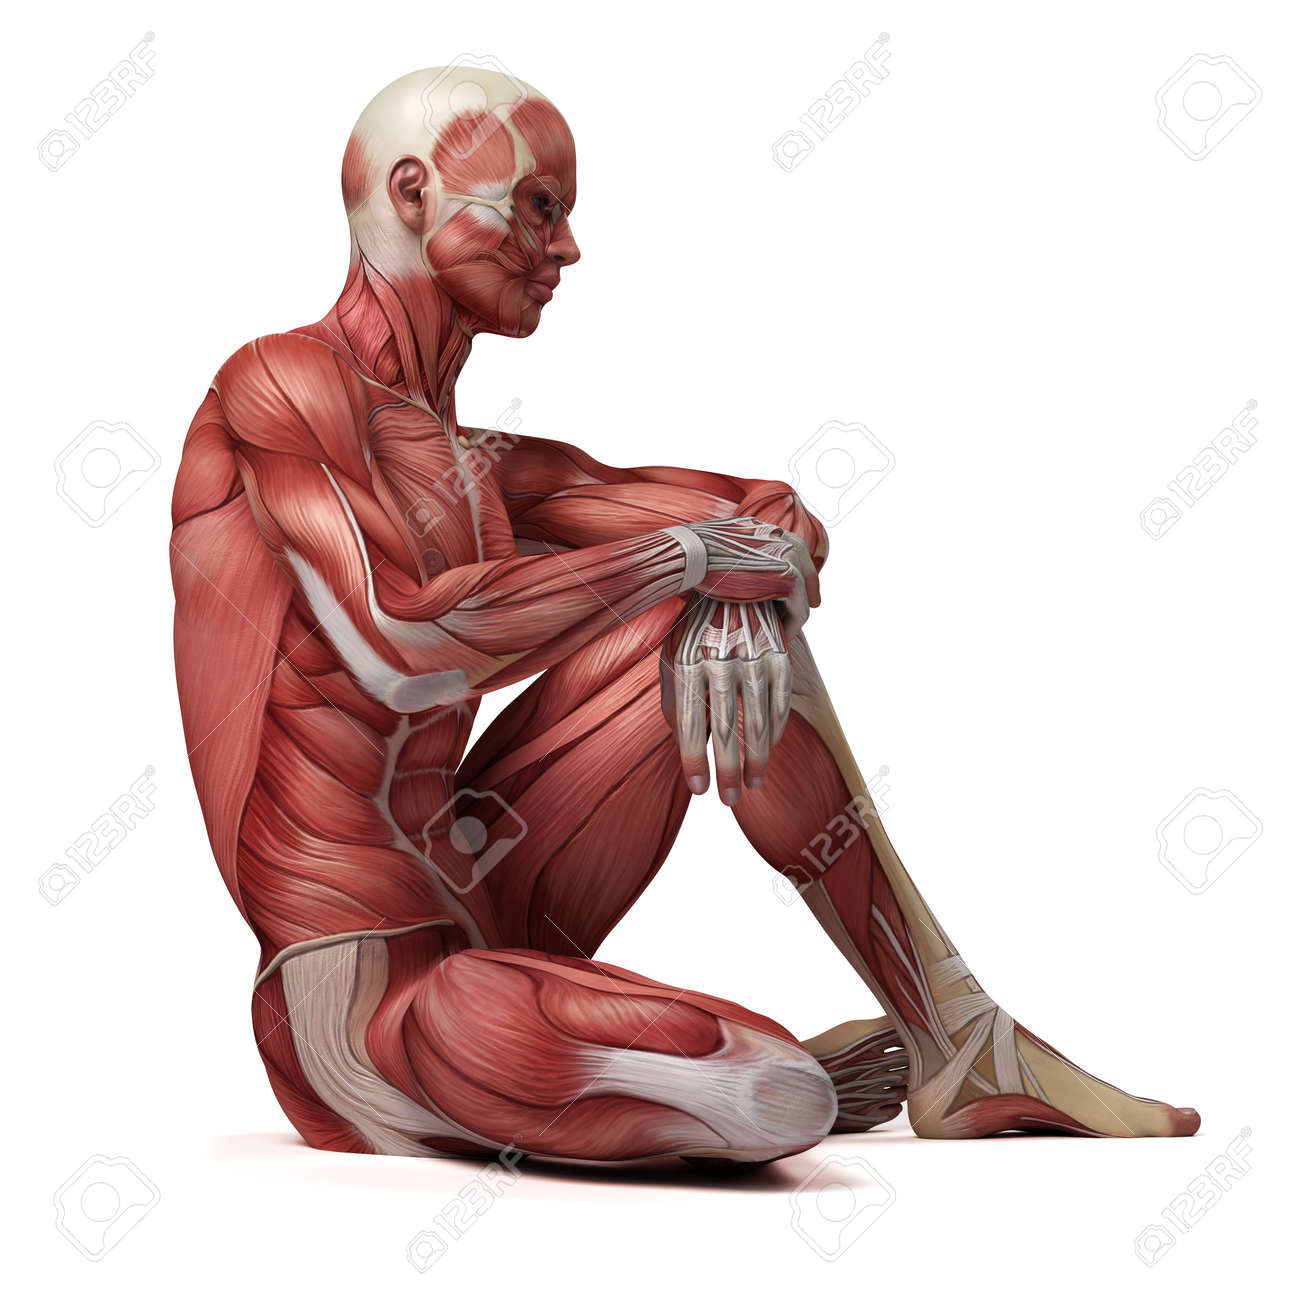 Physiology Stock Photos. Royalty Free Physiology Images